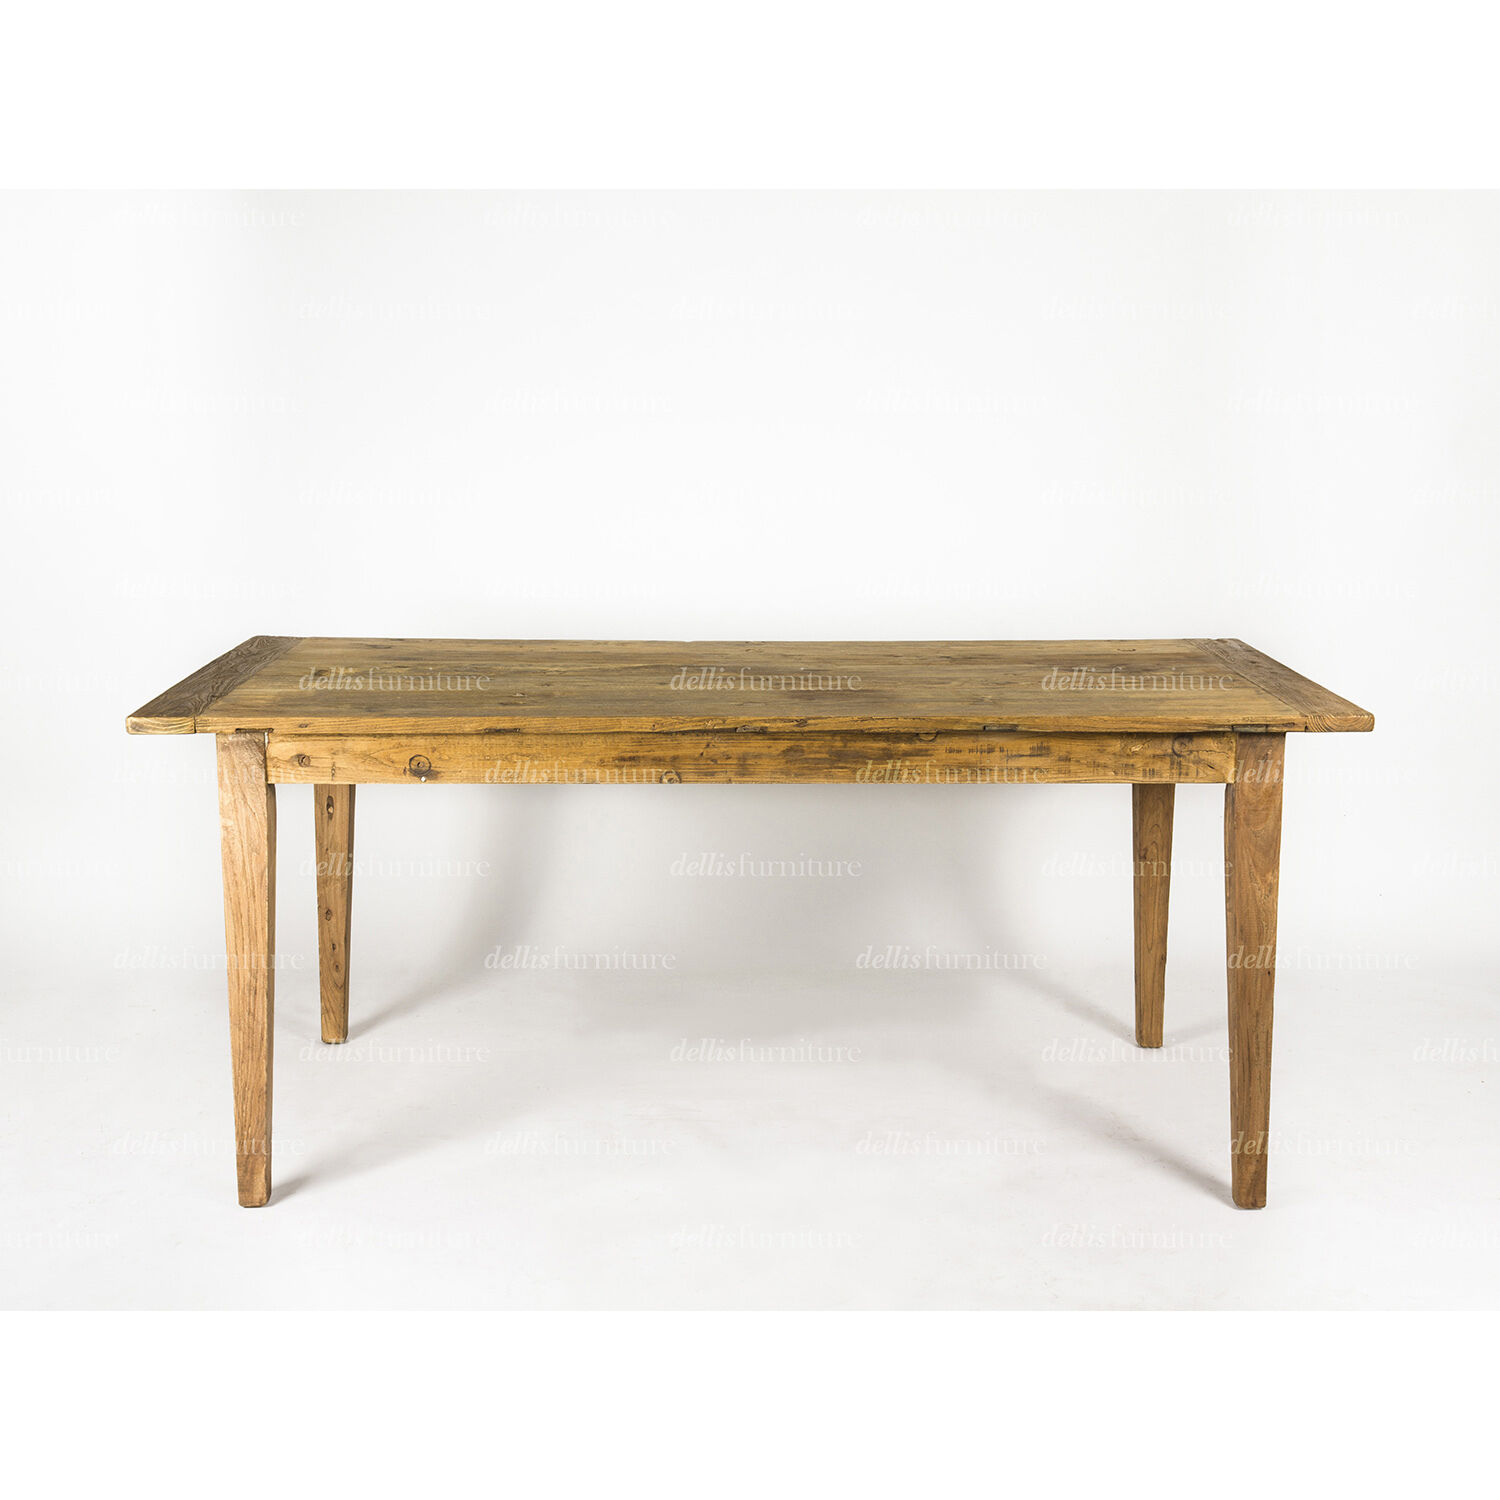 NEW Rustic Provincial Recycled Elm Solid Timber Dining  : s l1600 from www.ebay.com size 1500 x 1500 jpeg 118kB